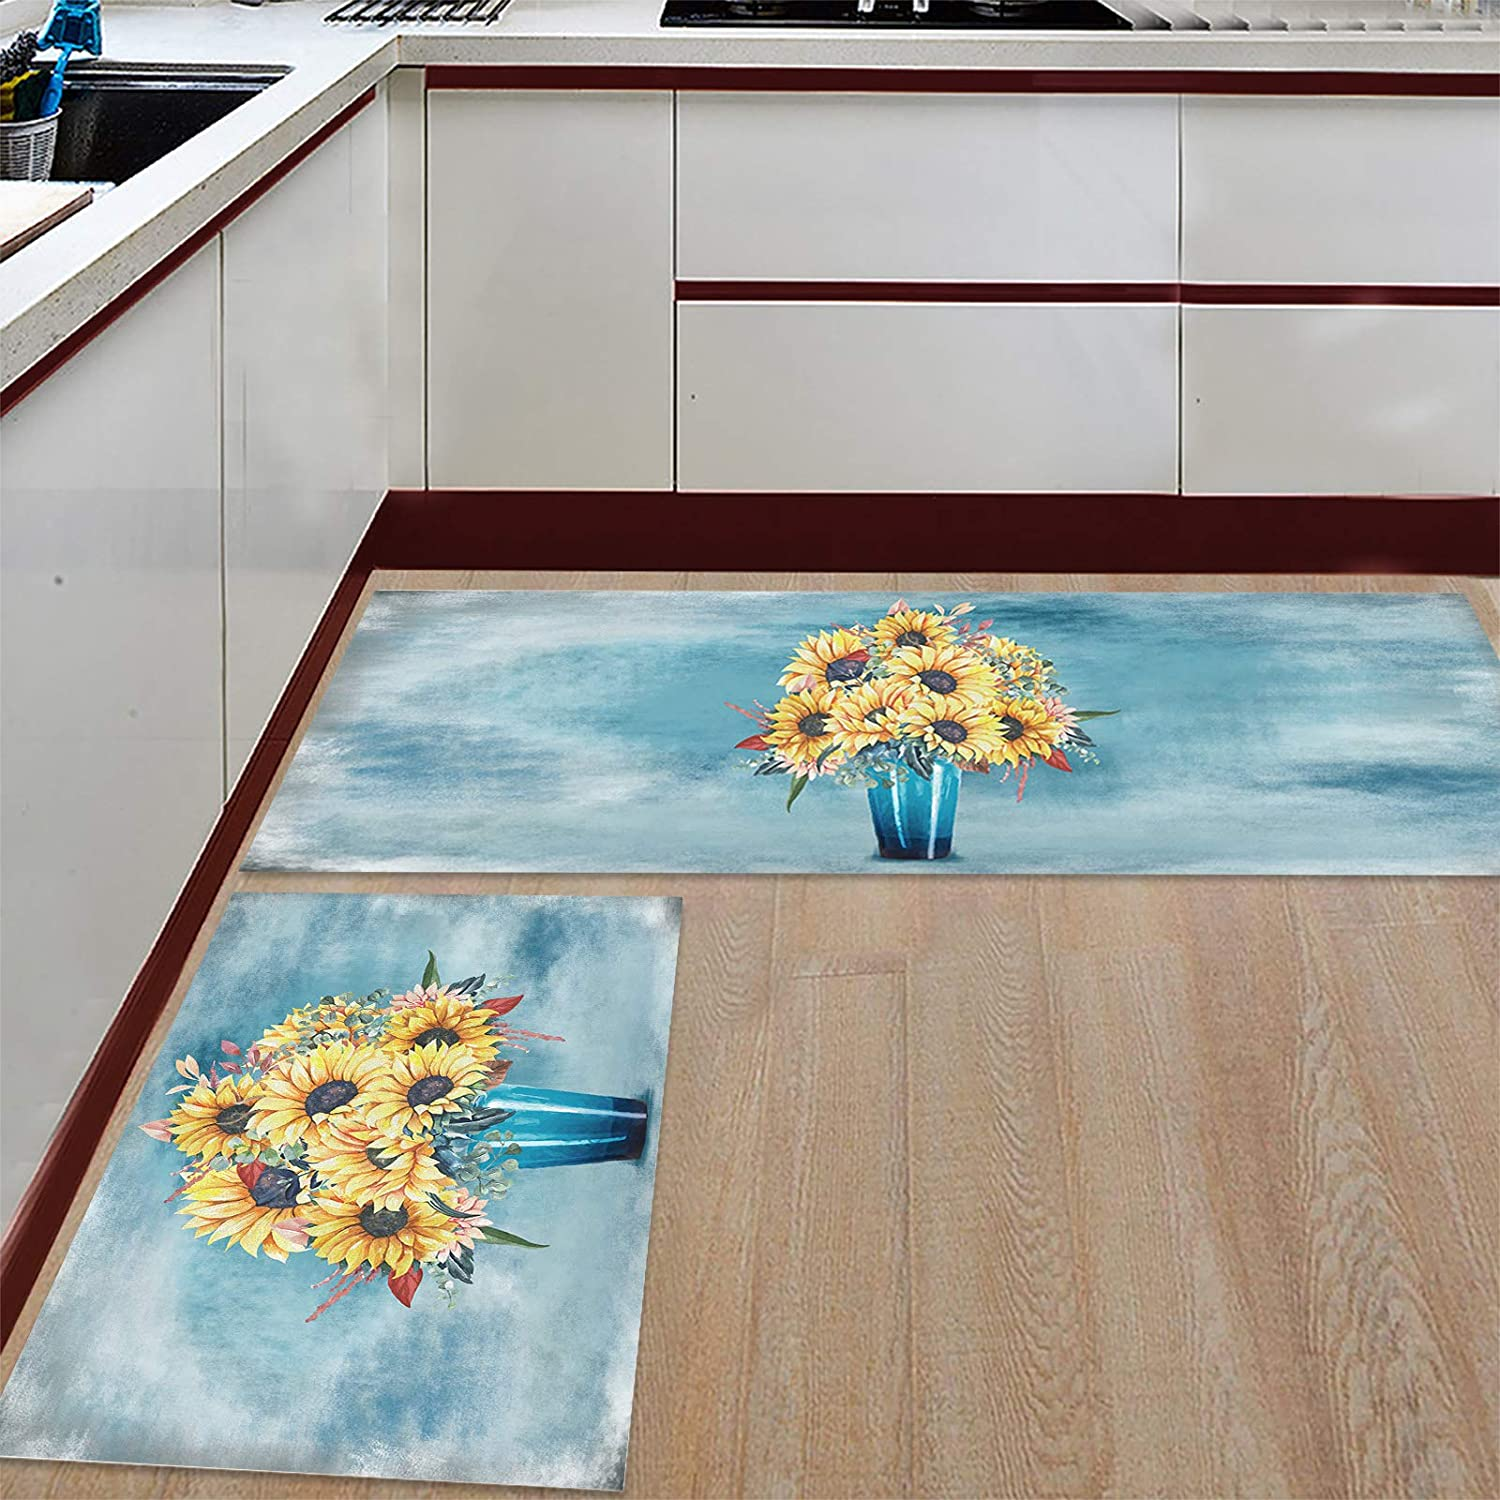 Prime Ranking TOP20 Leader Kitchen Mat and Rugs Sunflower on of 2 San Francisco Mall Vintage Set